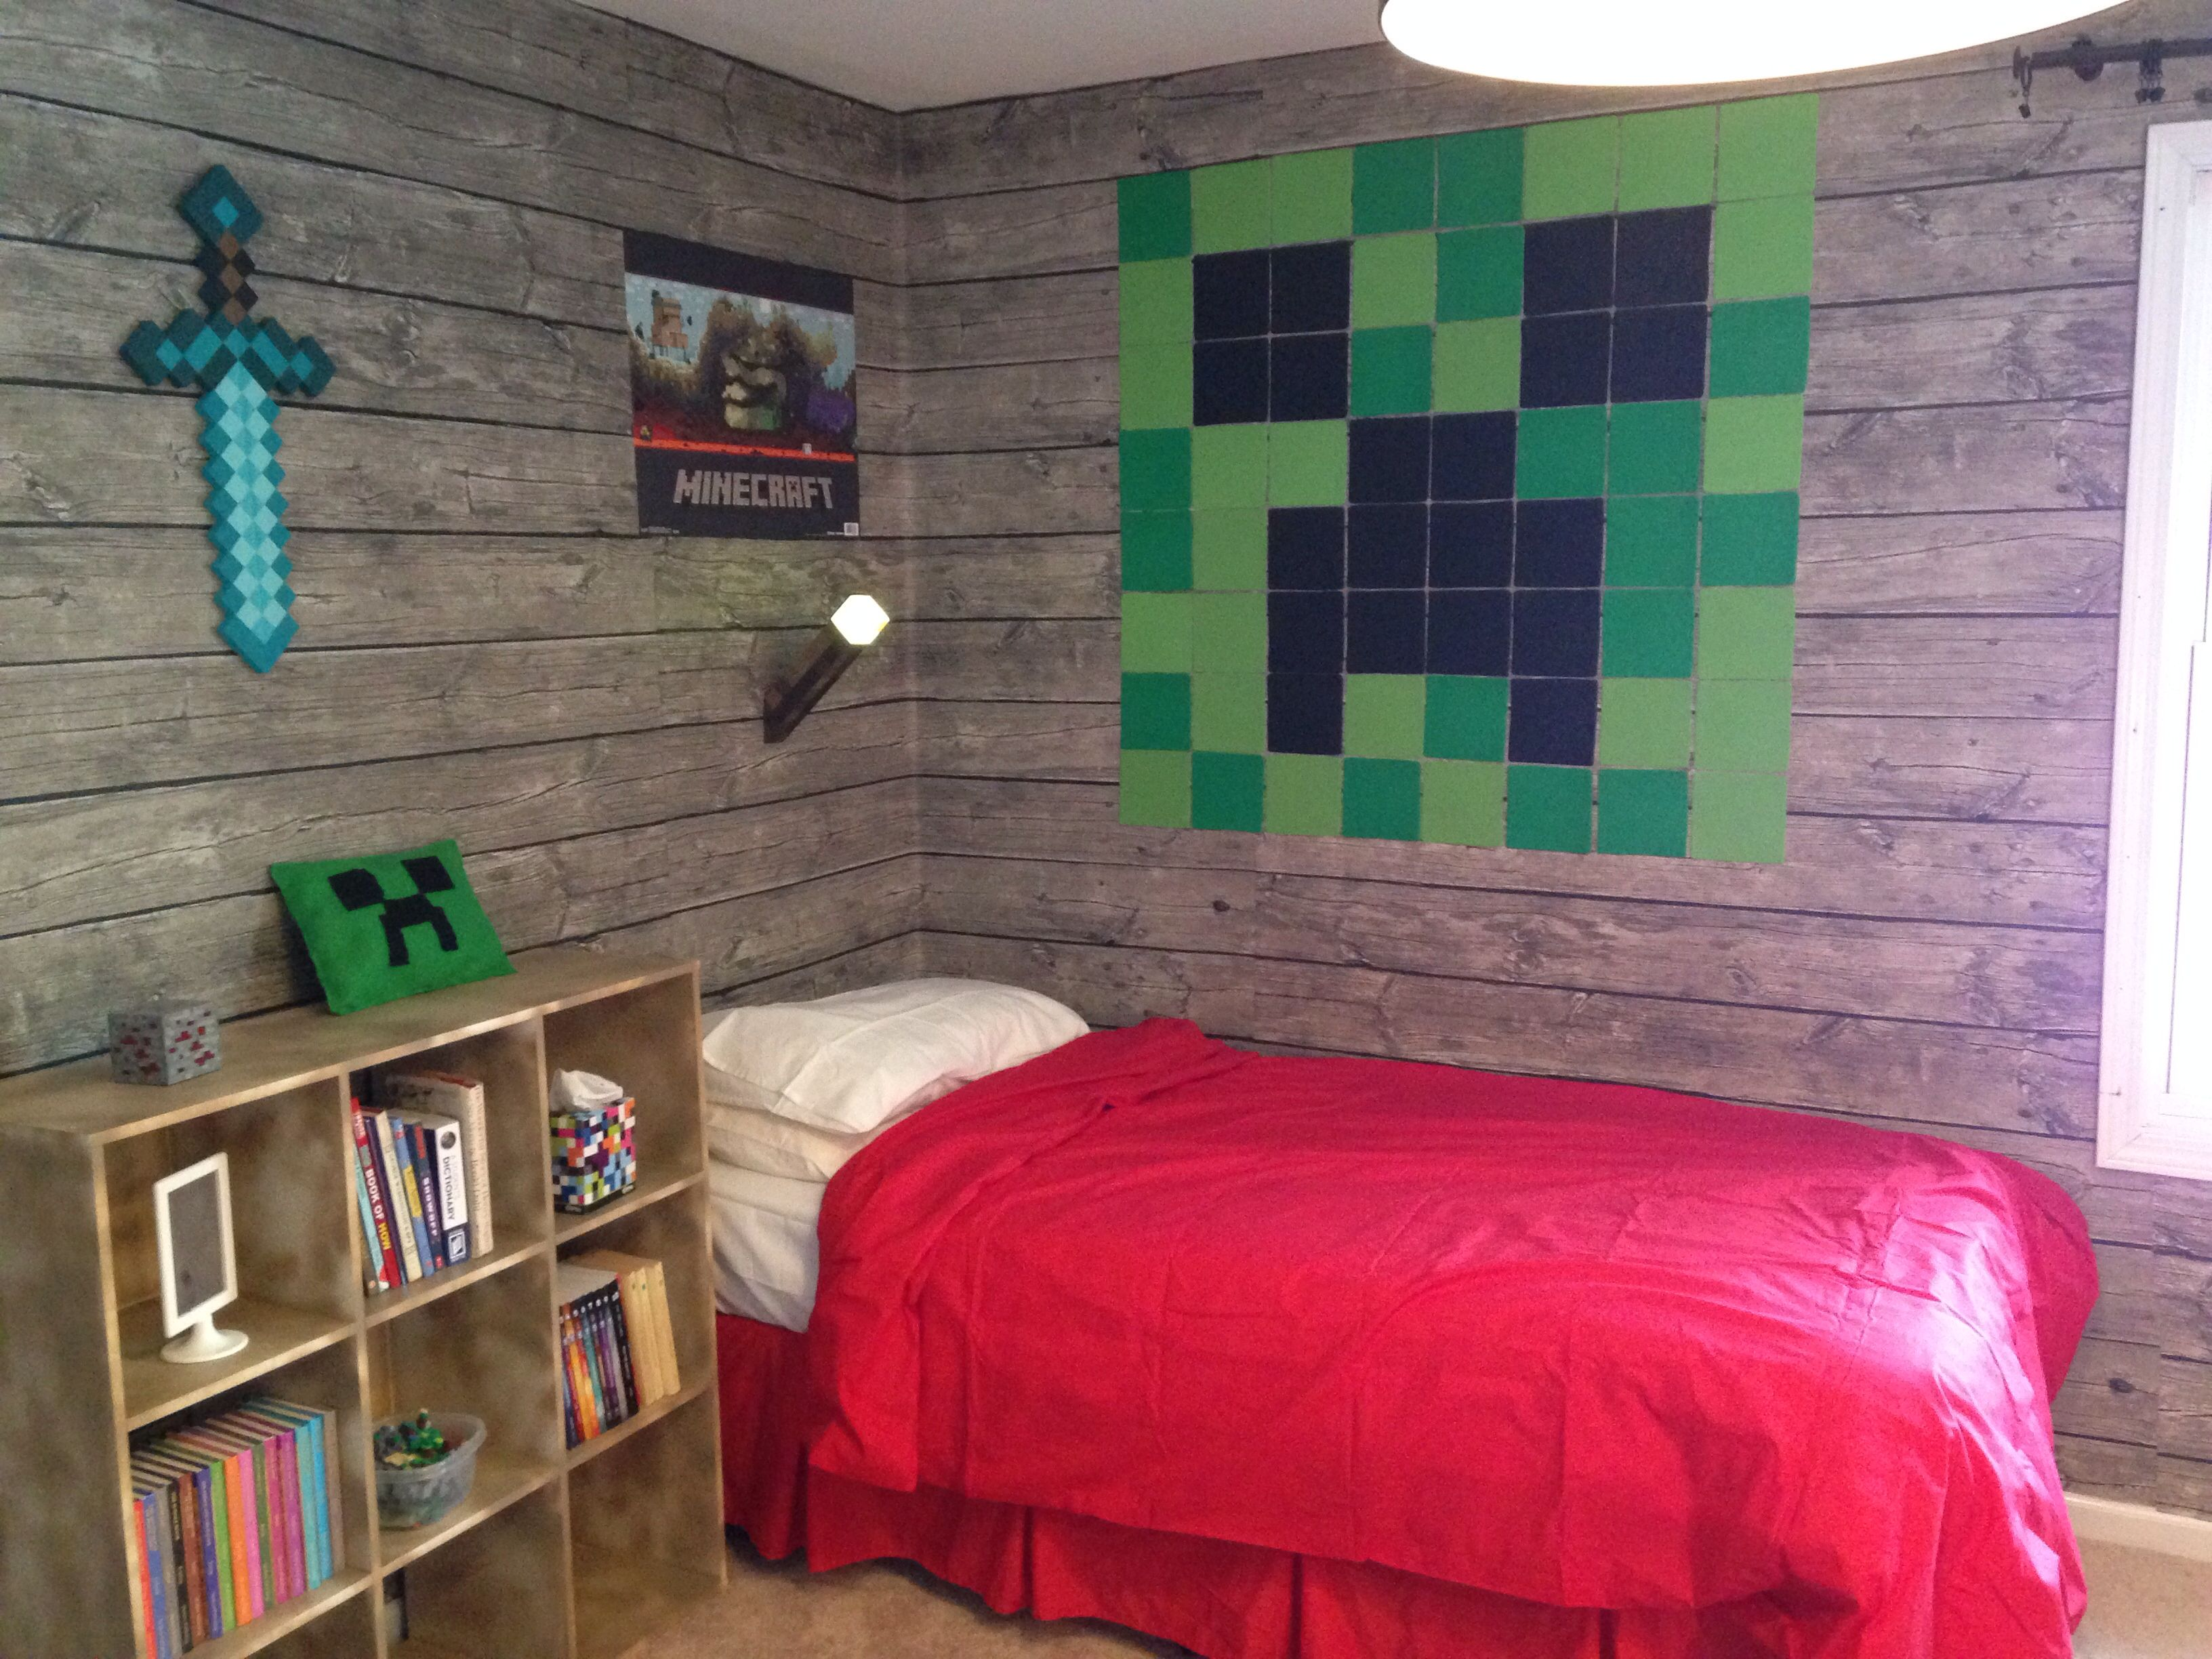 The hit title has continued to evolve since launching 10 years ago, and at times can feel like a very different game. Pin by Campbell Kids on Minecraft Bedroom | Minecraft room ...